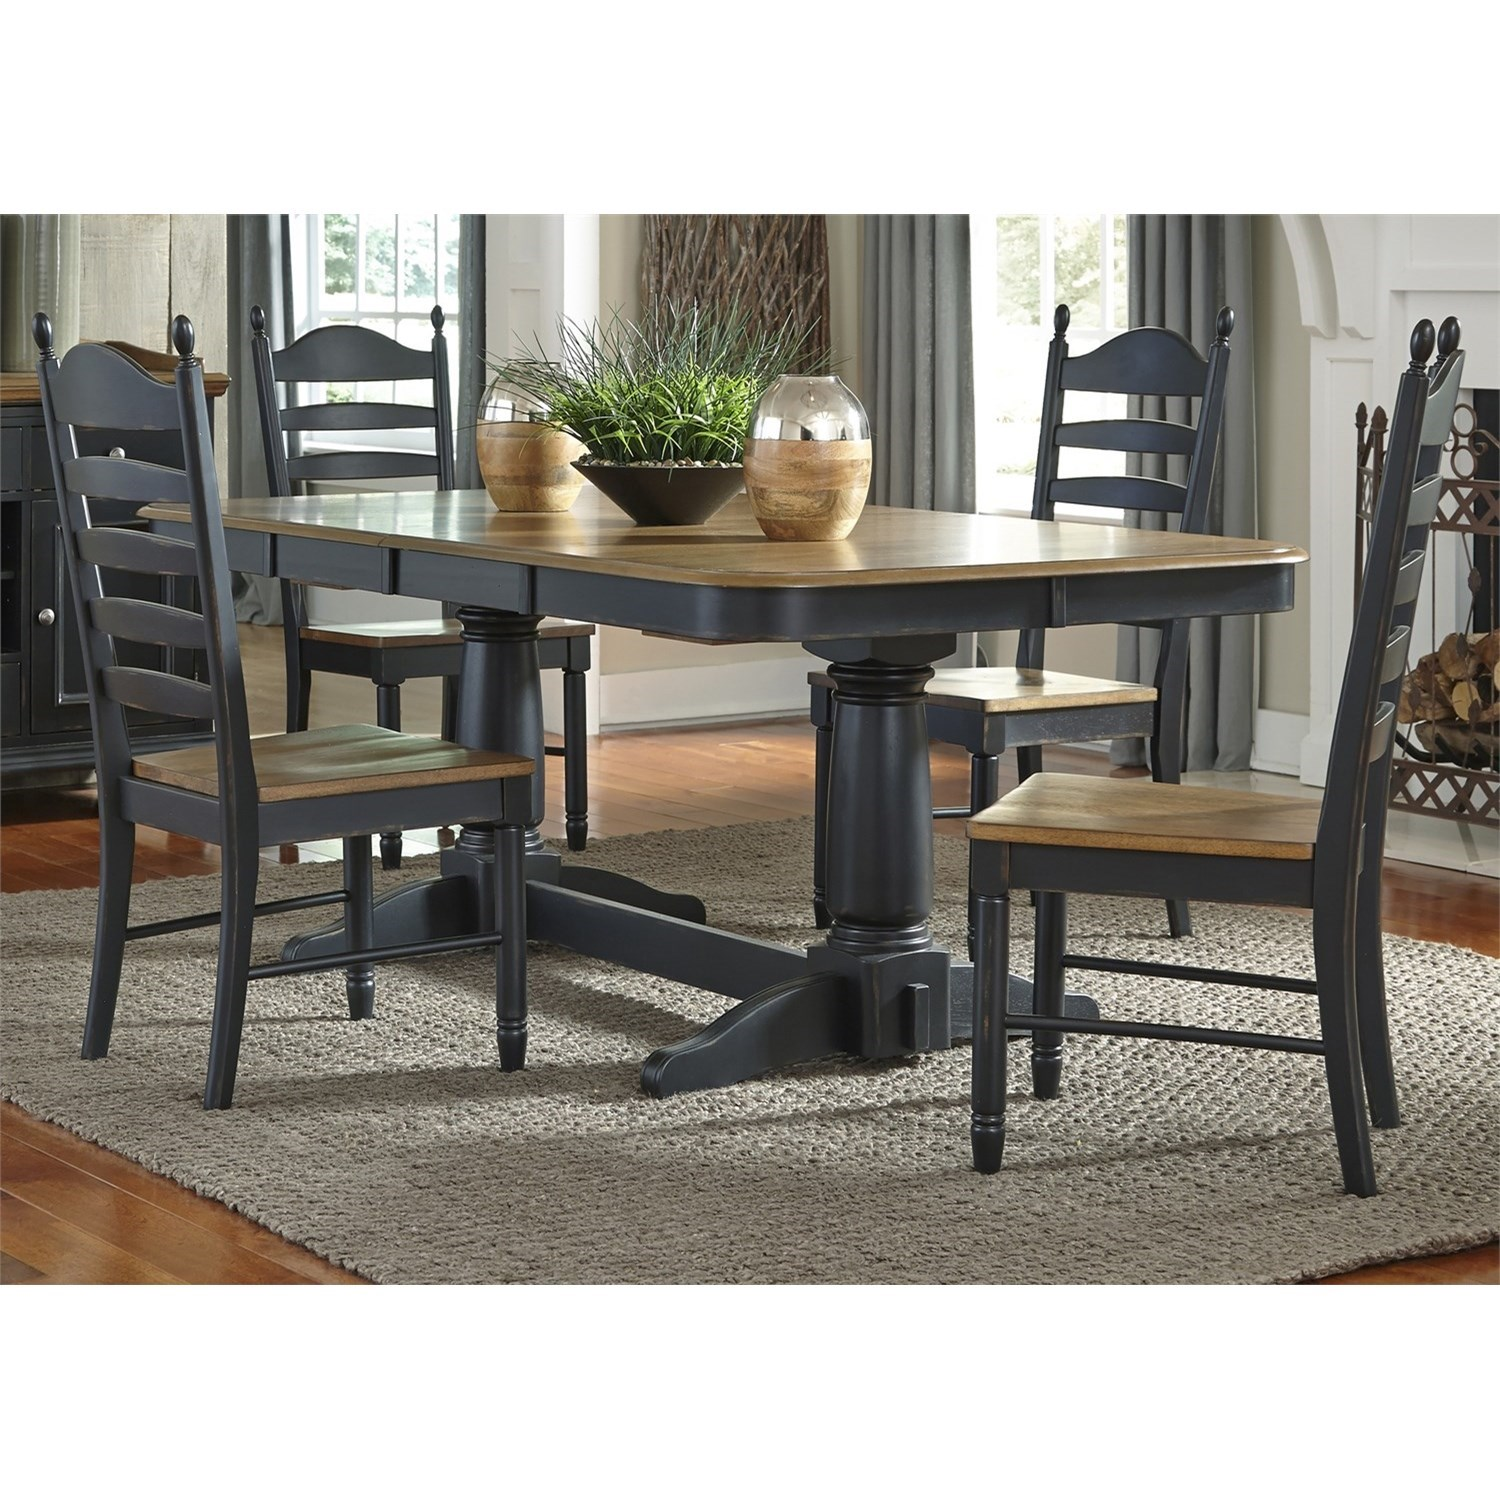 Liberty Furniture Springfield II Dining 5 Piece Double Pedestal Table & Chair Set - Item Number: 678-CD-52PS